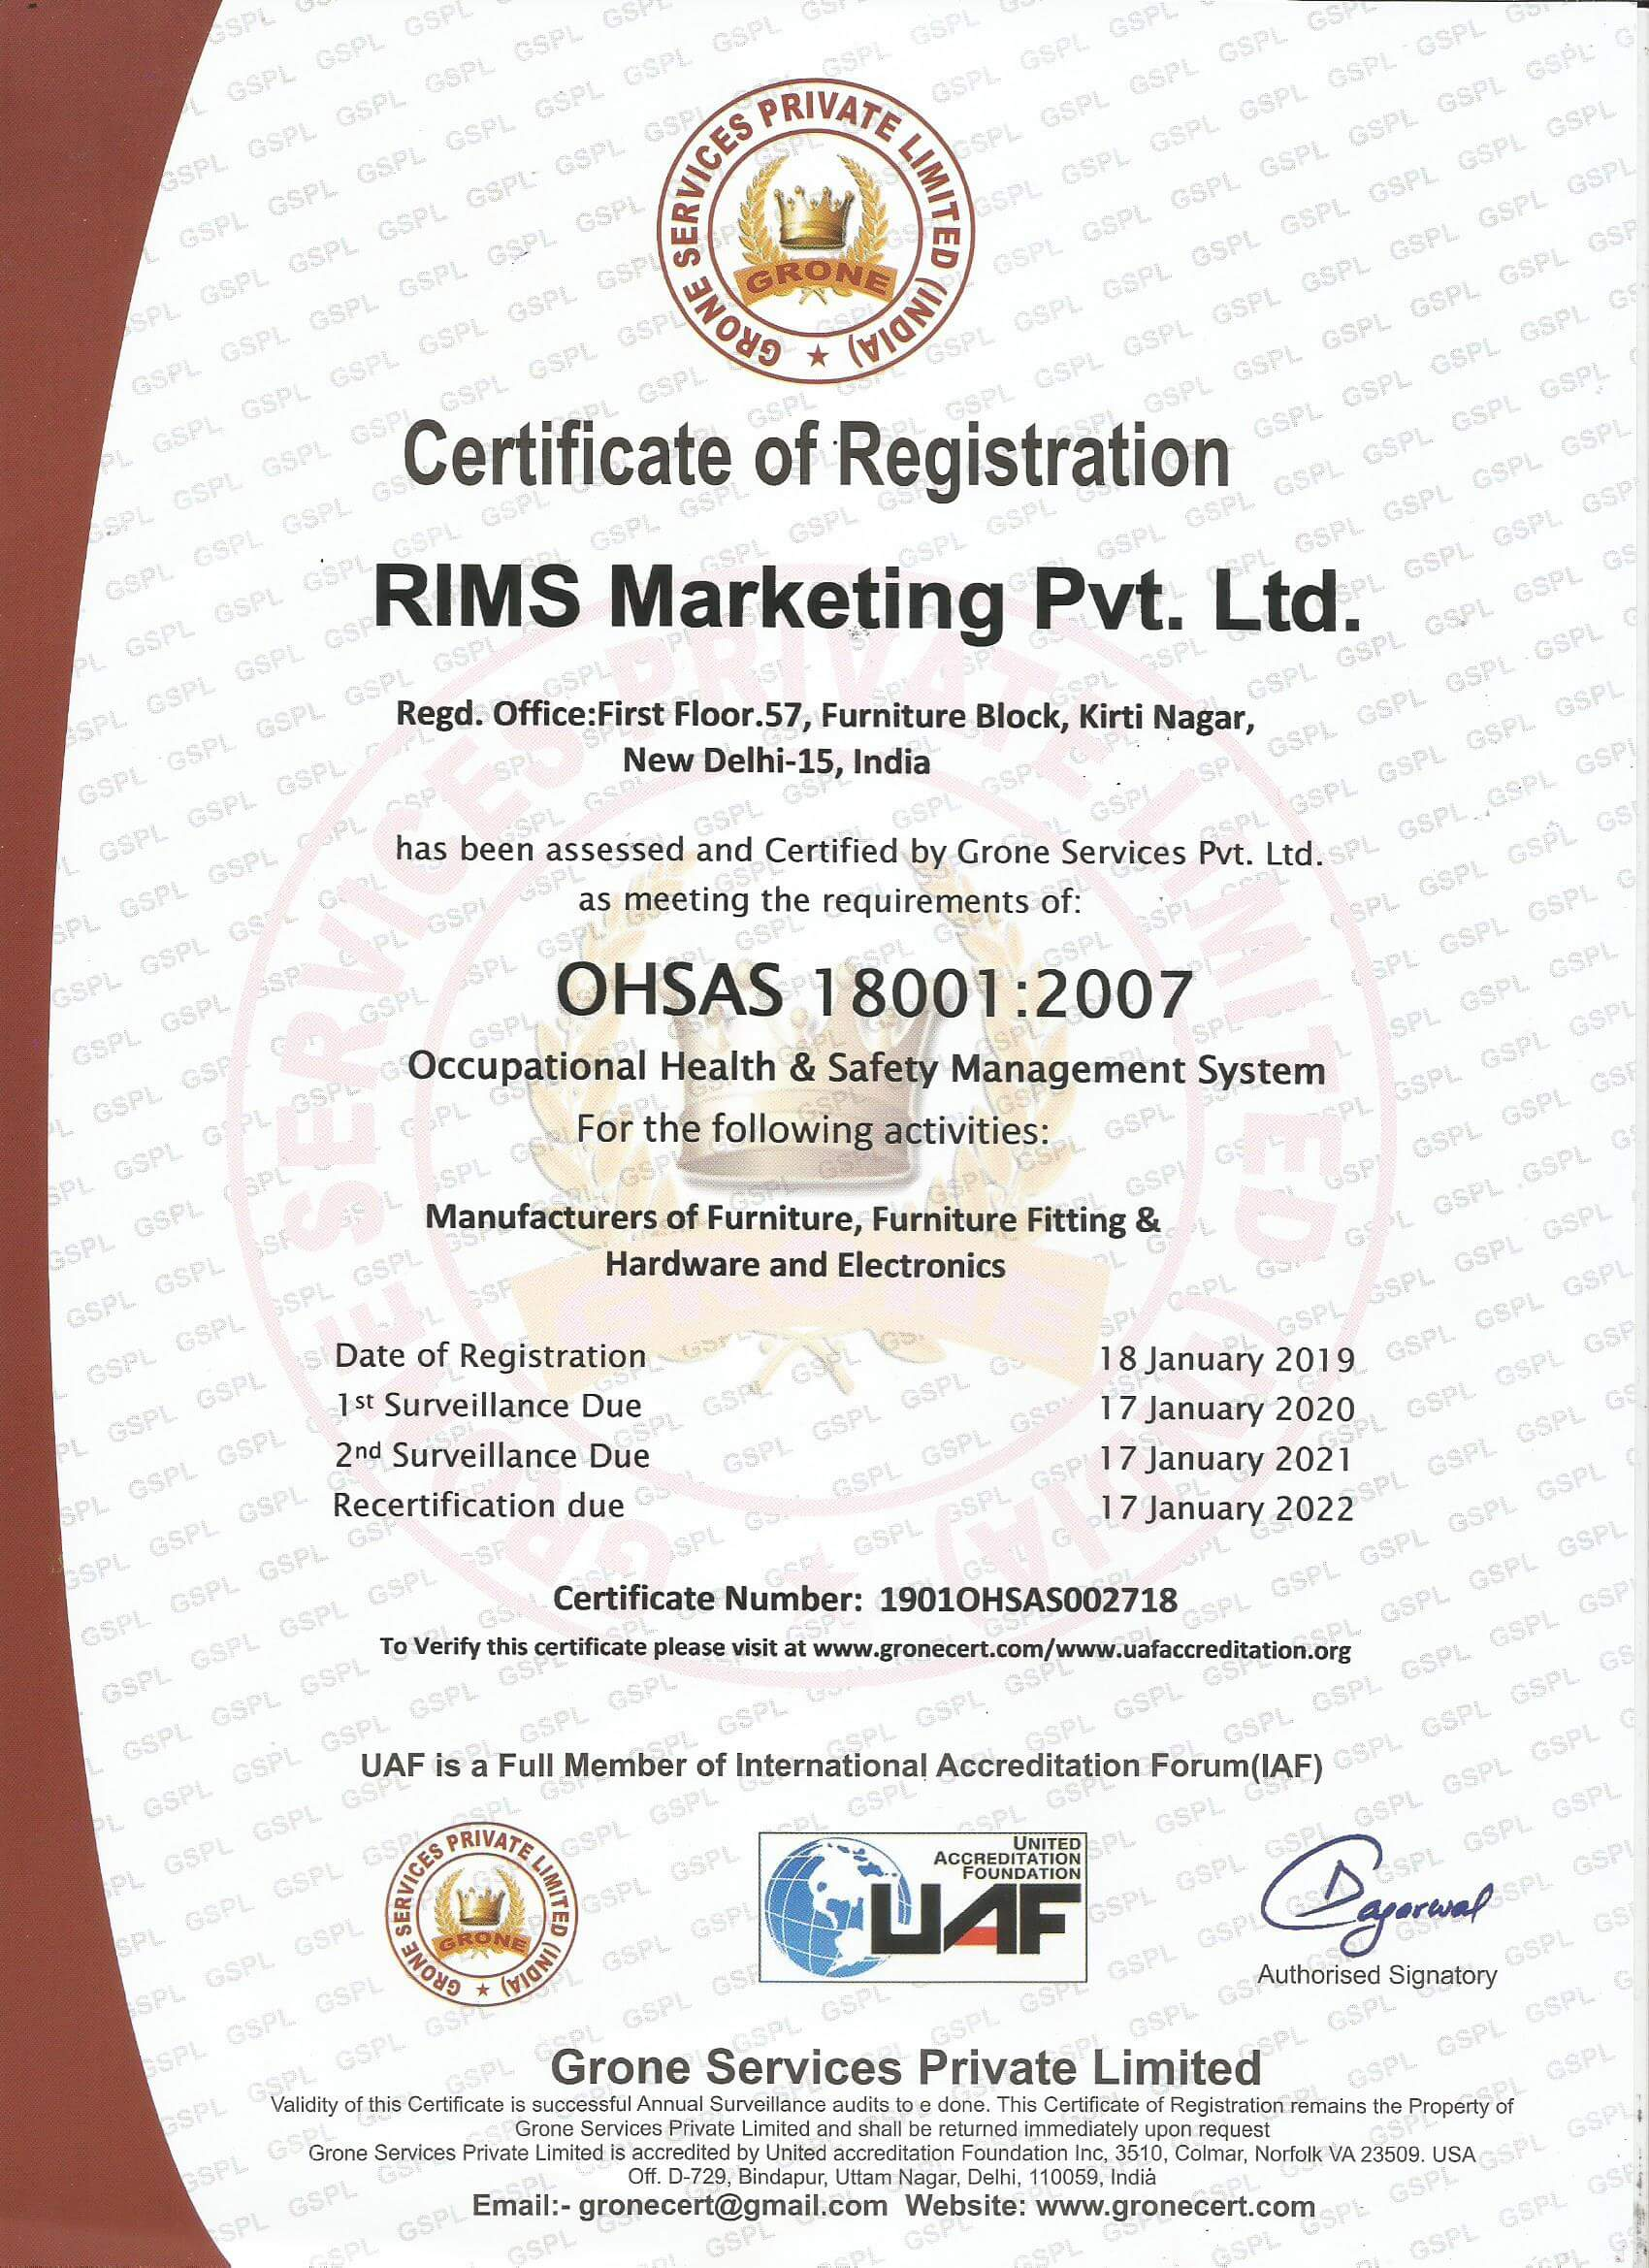 RIMS Marketing Pvt. Ltd